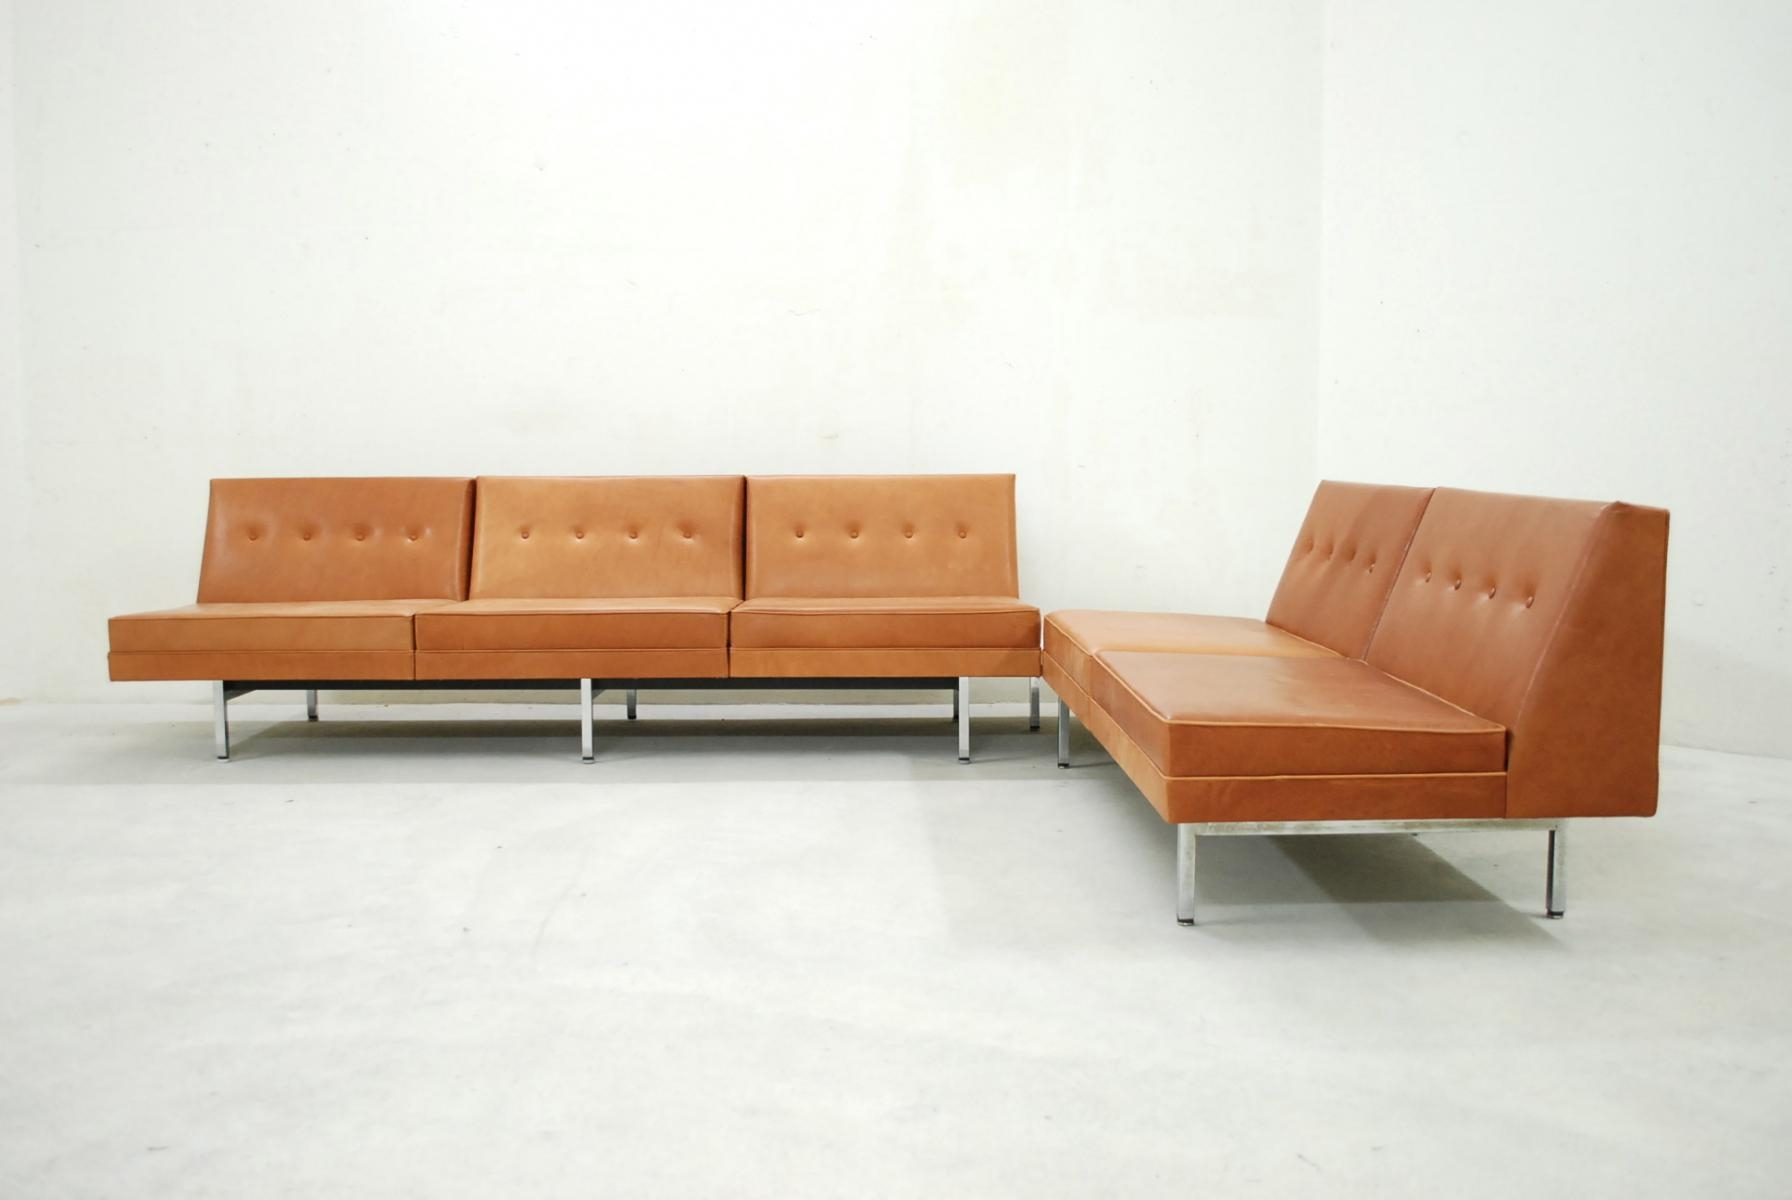 Cognac Leather Modular Sofa Setgeorge Nelson For Herman Miller Inside George Nelson Sofas (View 9 of 20)